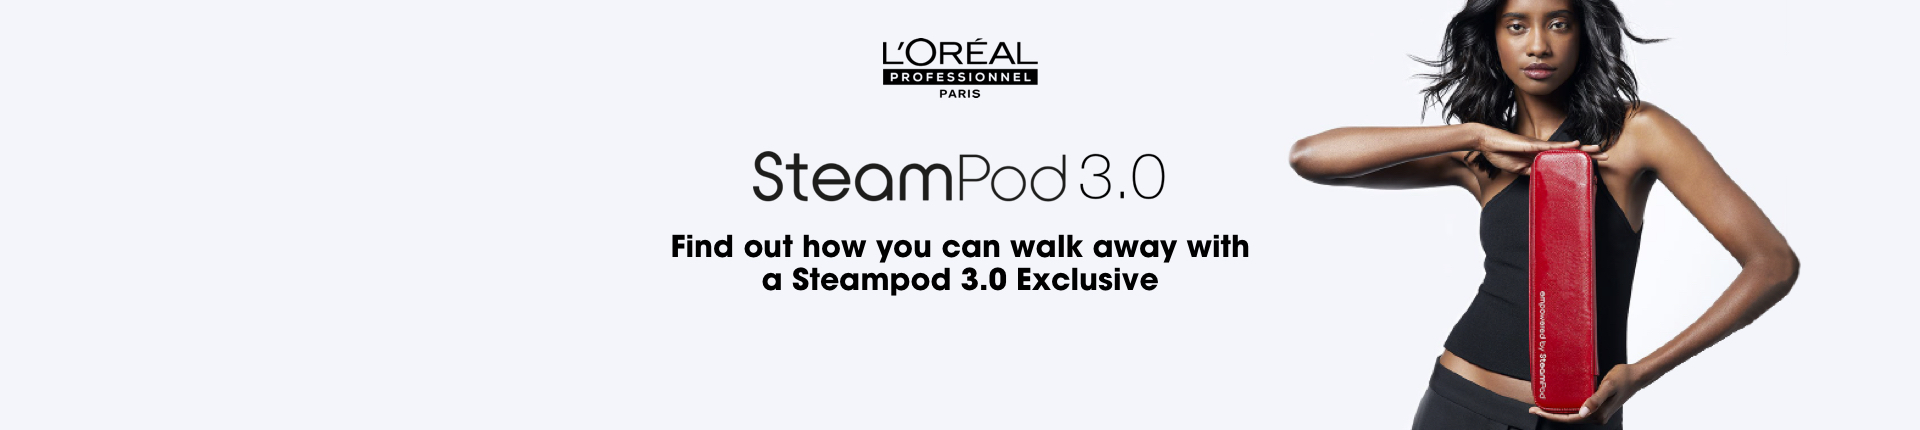 steampod | L'Oréal Partner Shop